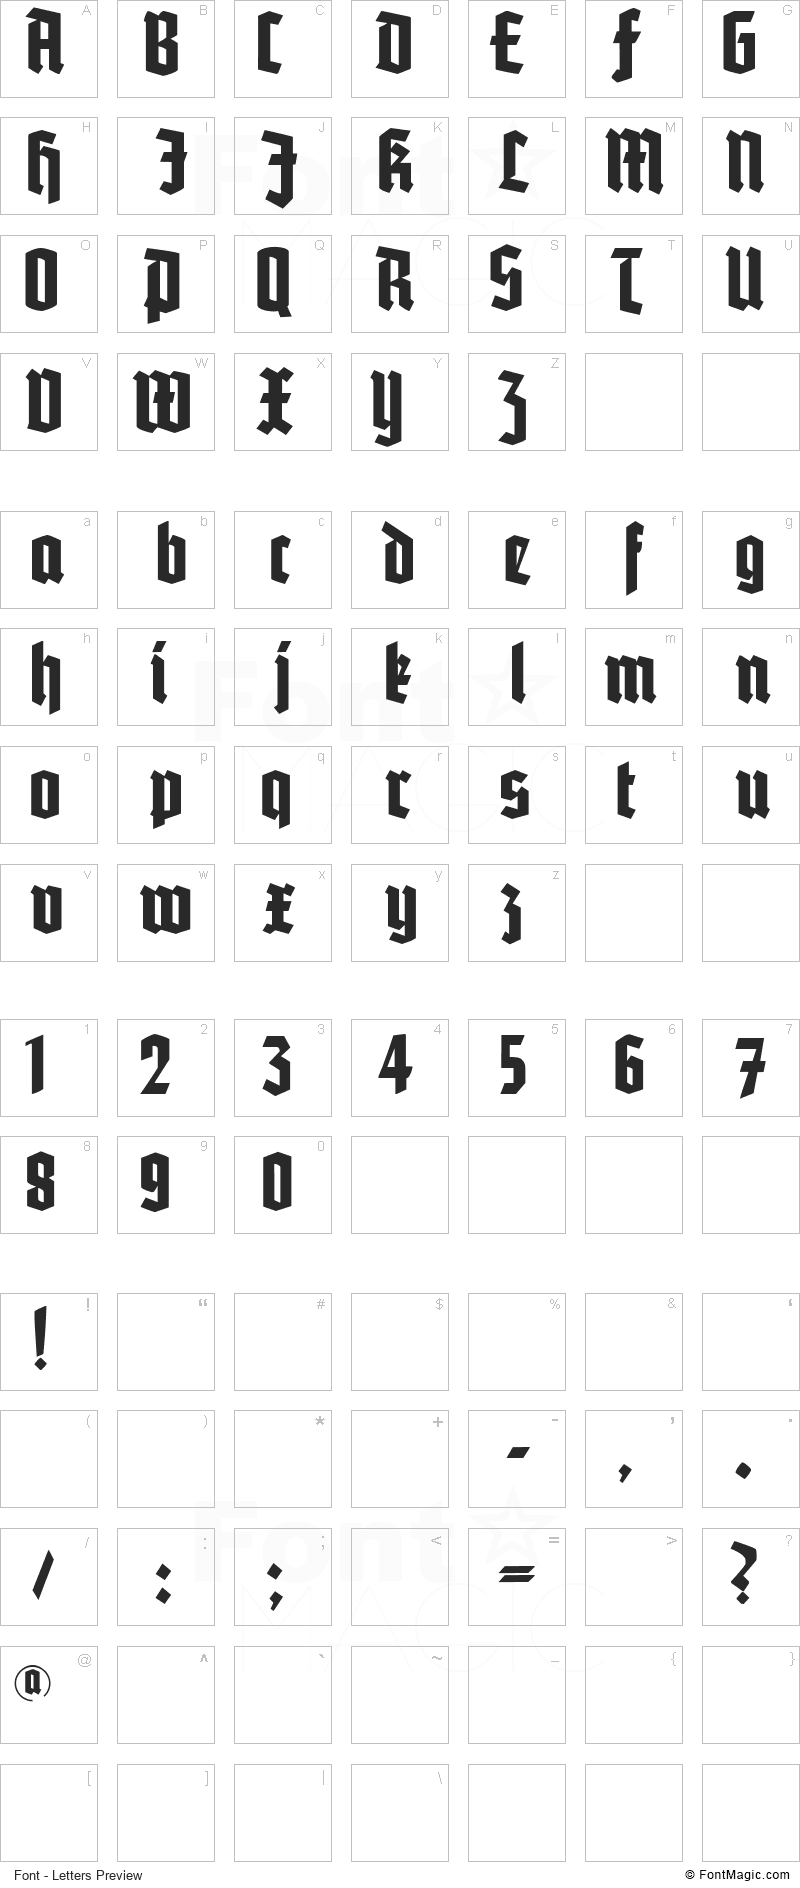 Potsdam Font - All Latters Preview Chart